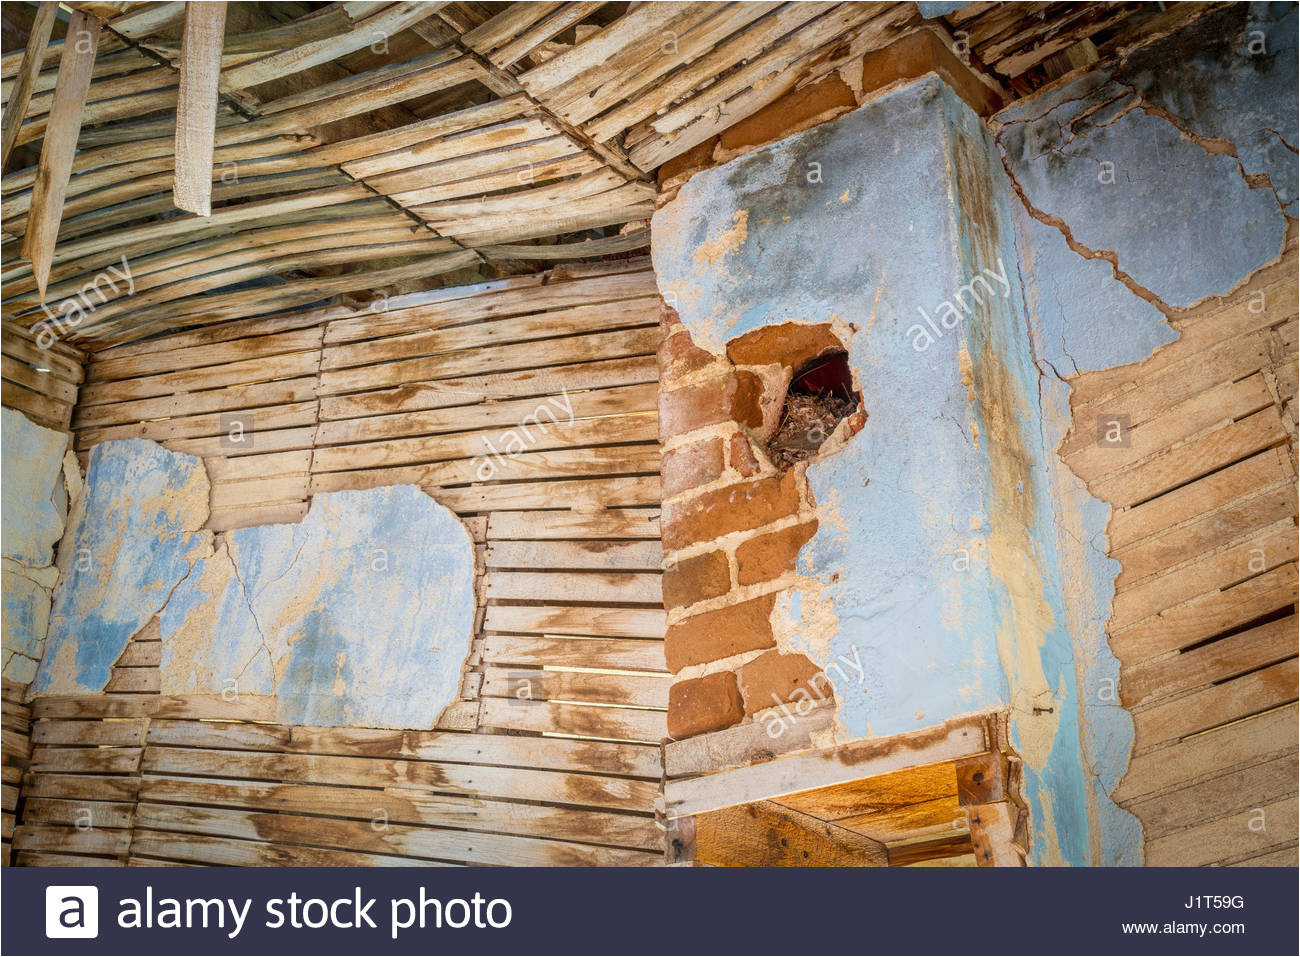 urban decay abstract damaged interior od an abandoned house at an old gold mine in